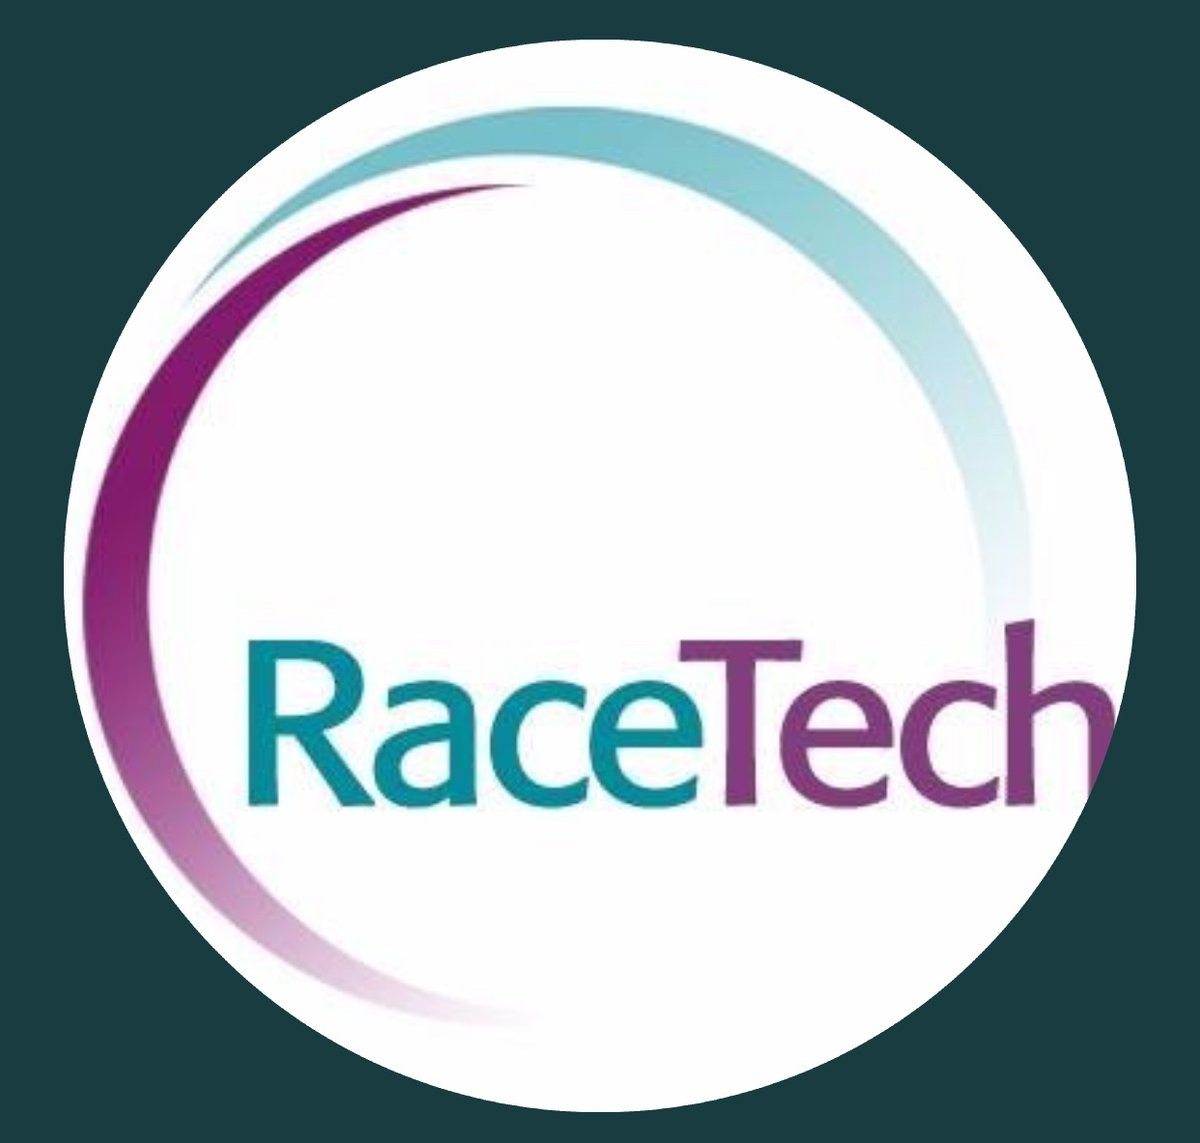 As we look forward to a great afternoon of racing on @itvracing we are pleased to welcome @RaceTechUK on board as a partner to our work. The partnership will support us in our education and careers offer to young people interested in progressing a career in sports media 👏👏